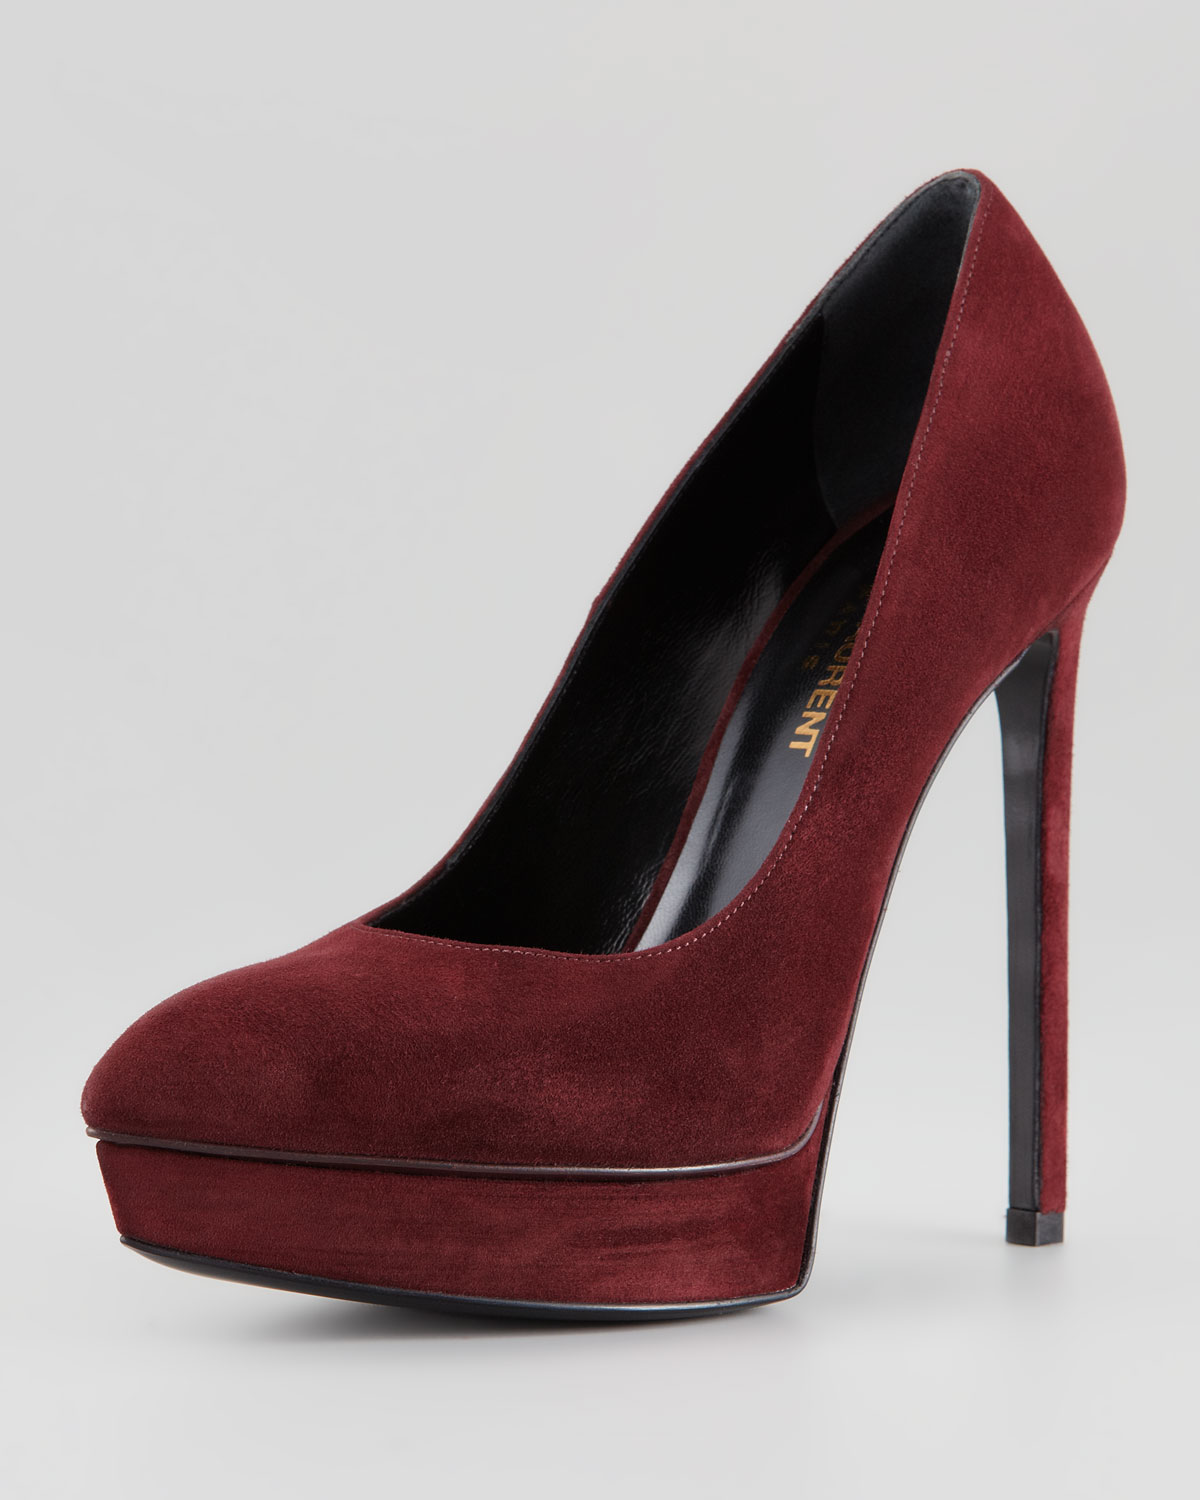 saint laurent suede pointedtoe platform pump bordeaux in red lyst. Black Bedroom Furniture Sets. Home Design Ideas